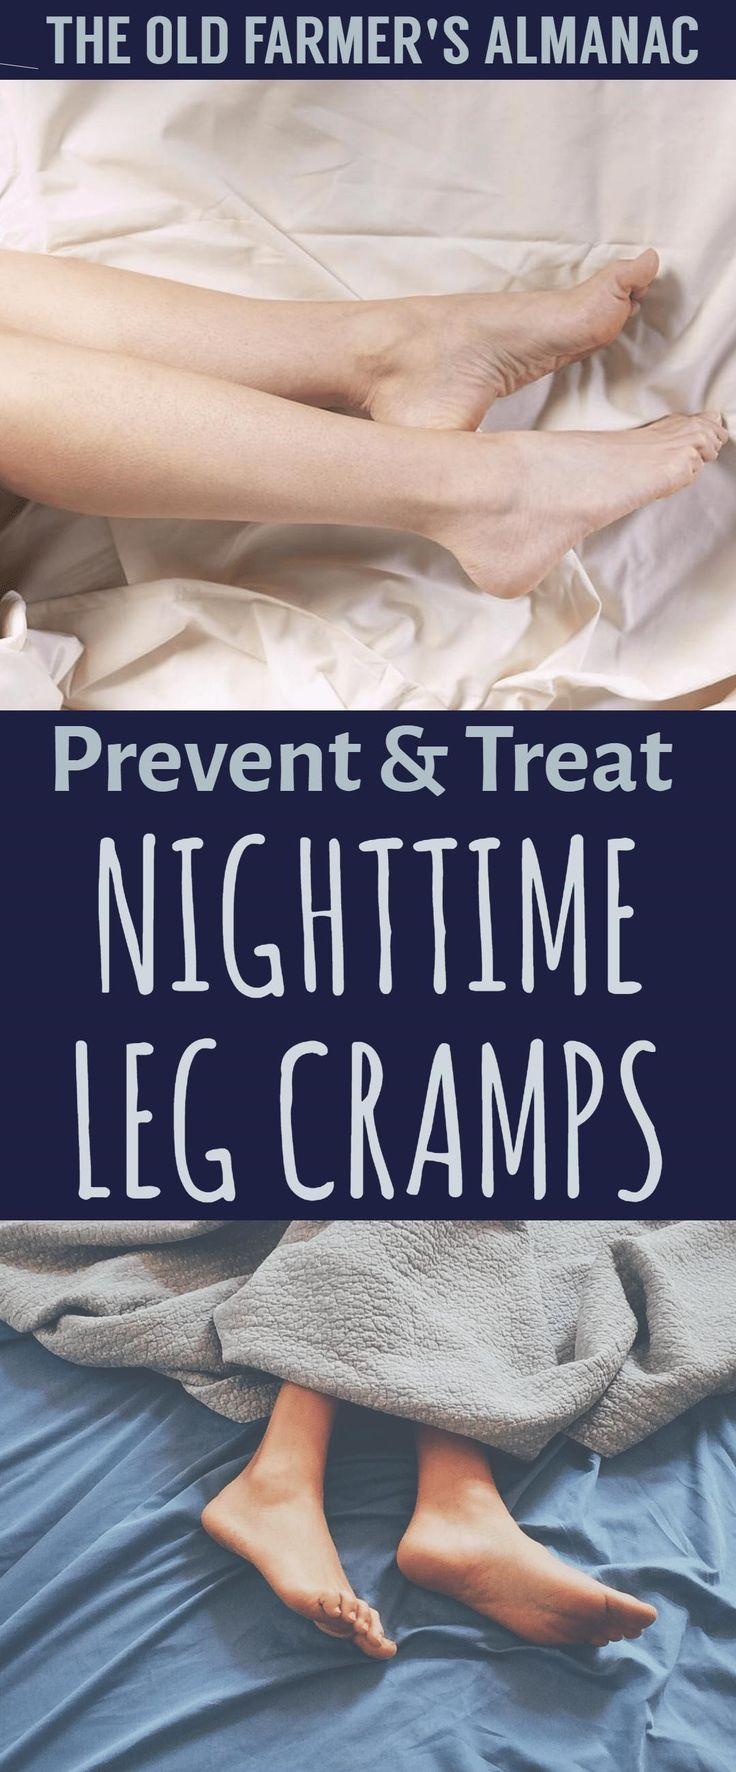 Treat and Prevent Nighttime Leg Cramps--tips, tricks, and methods to get relief from The Old Farmer's Almanac.